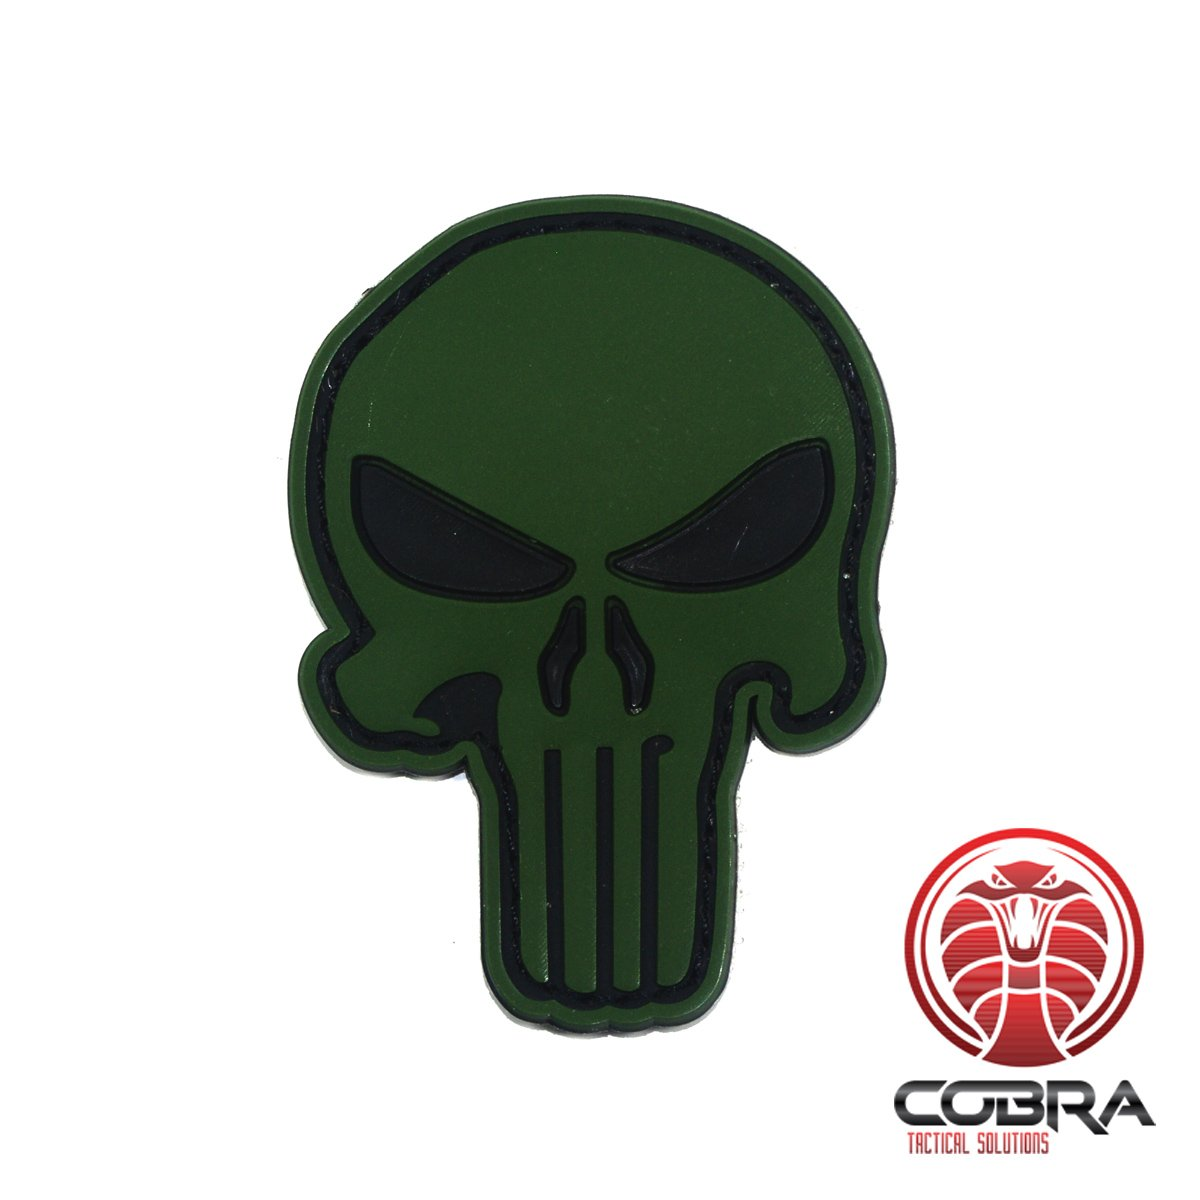 Cobra Tactical Solutions 3D Patch Punisher in PVC Verde Airsoft Cosplay Toppa